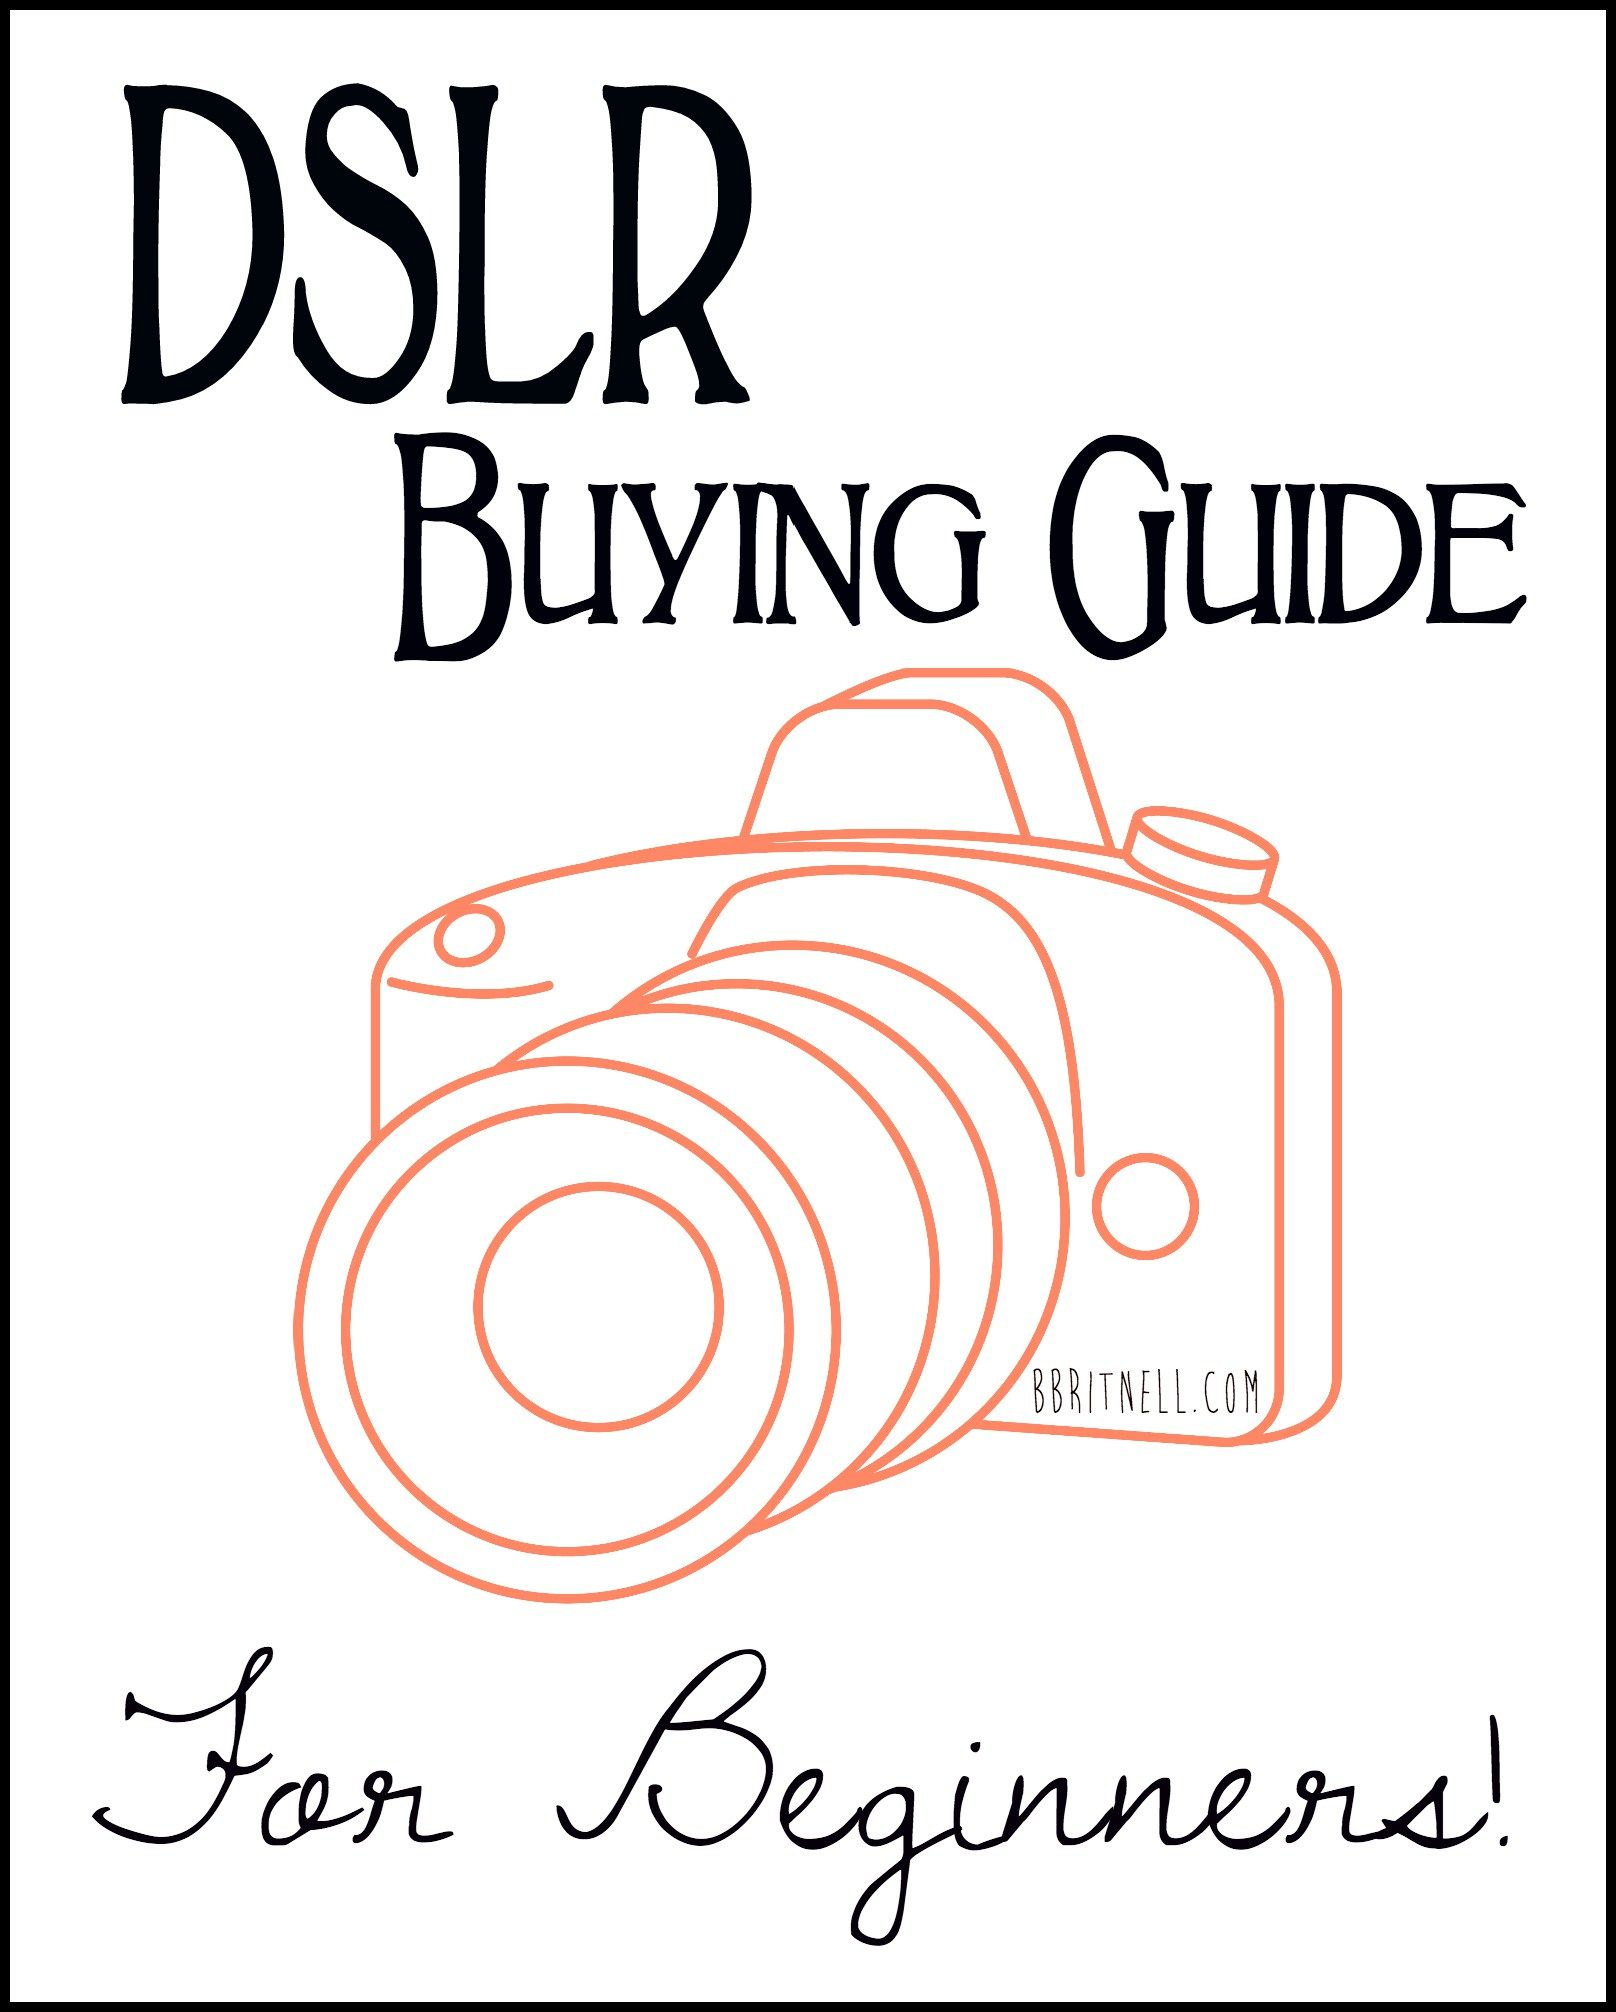 This Guide Goes Through MY Recommendations For DSLR Gear